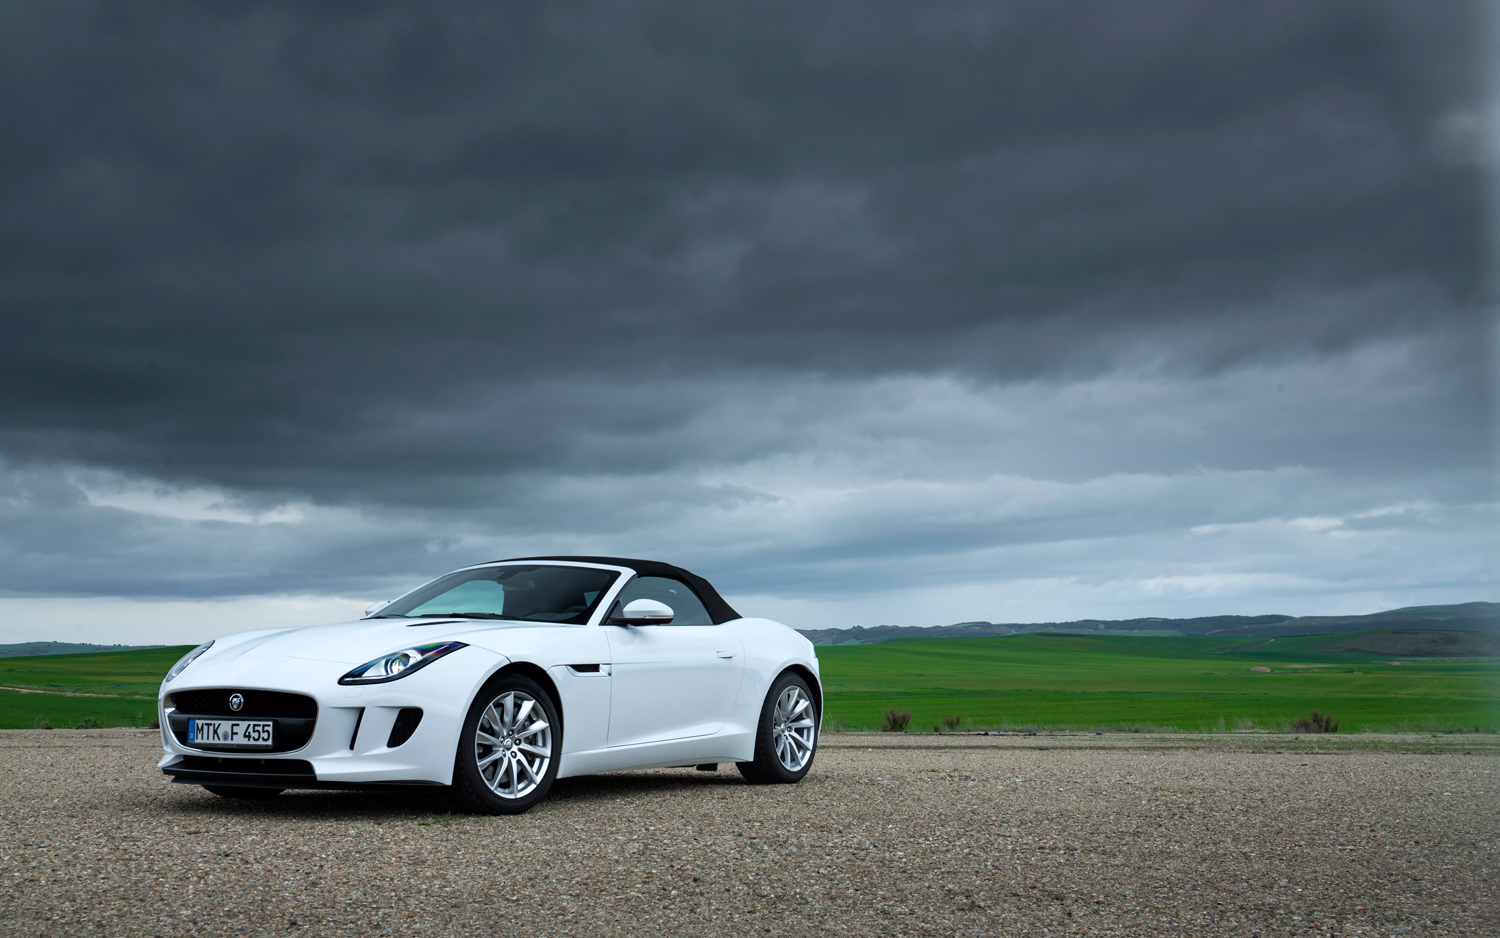 jaguar f type images full hd pictures